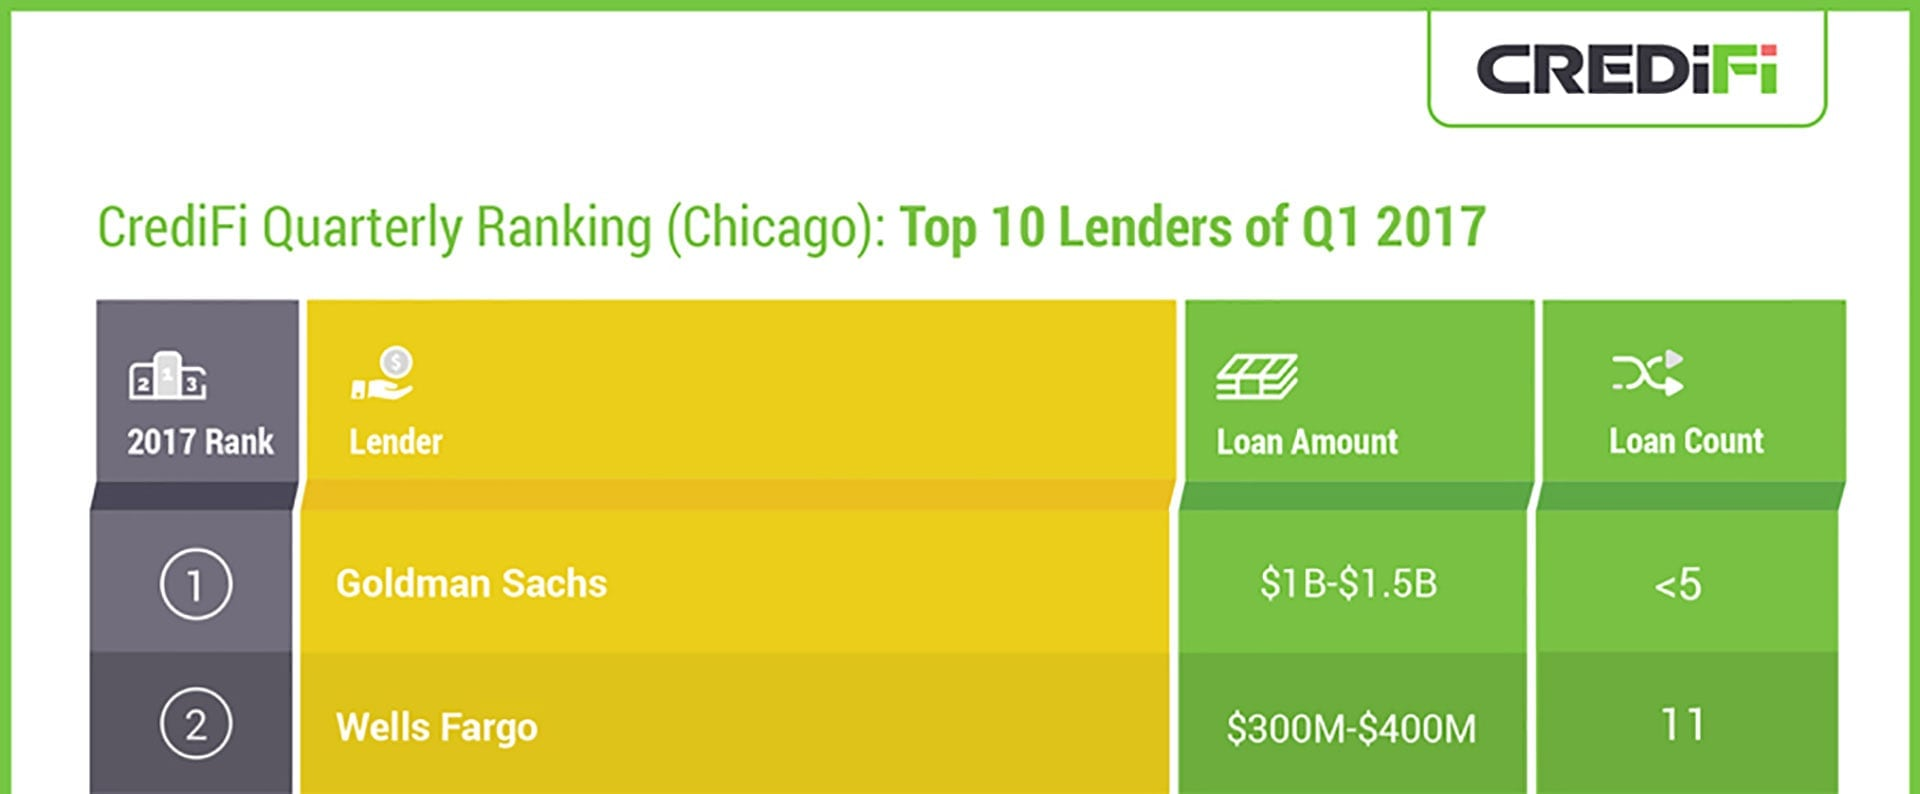 Top Lenders in Chicago